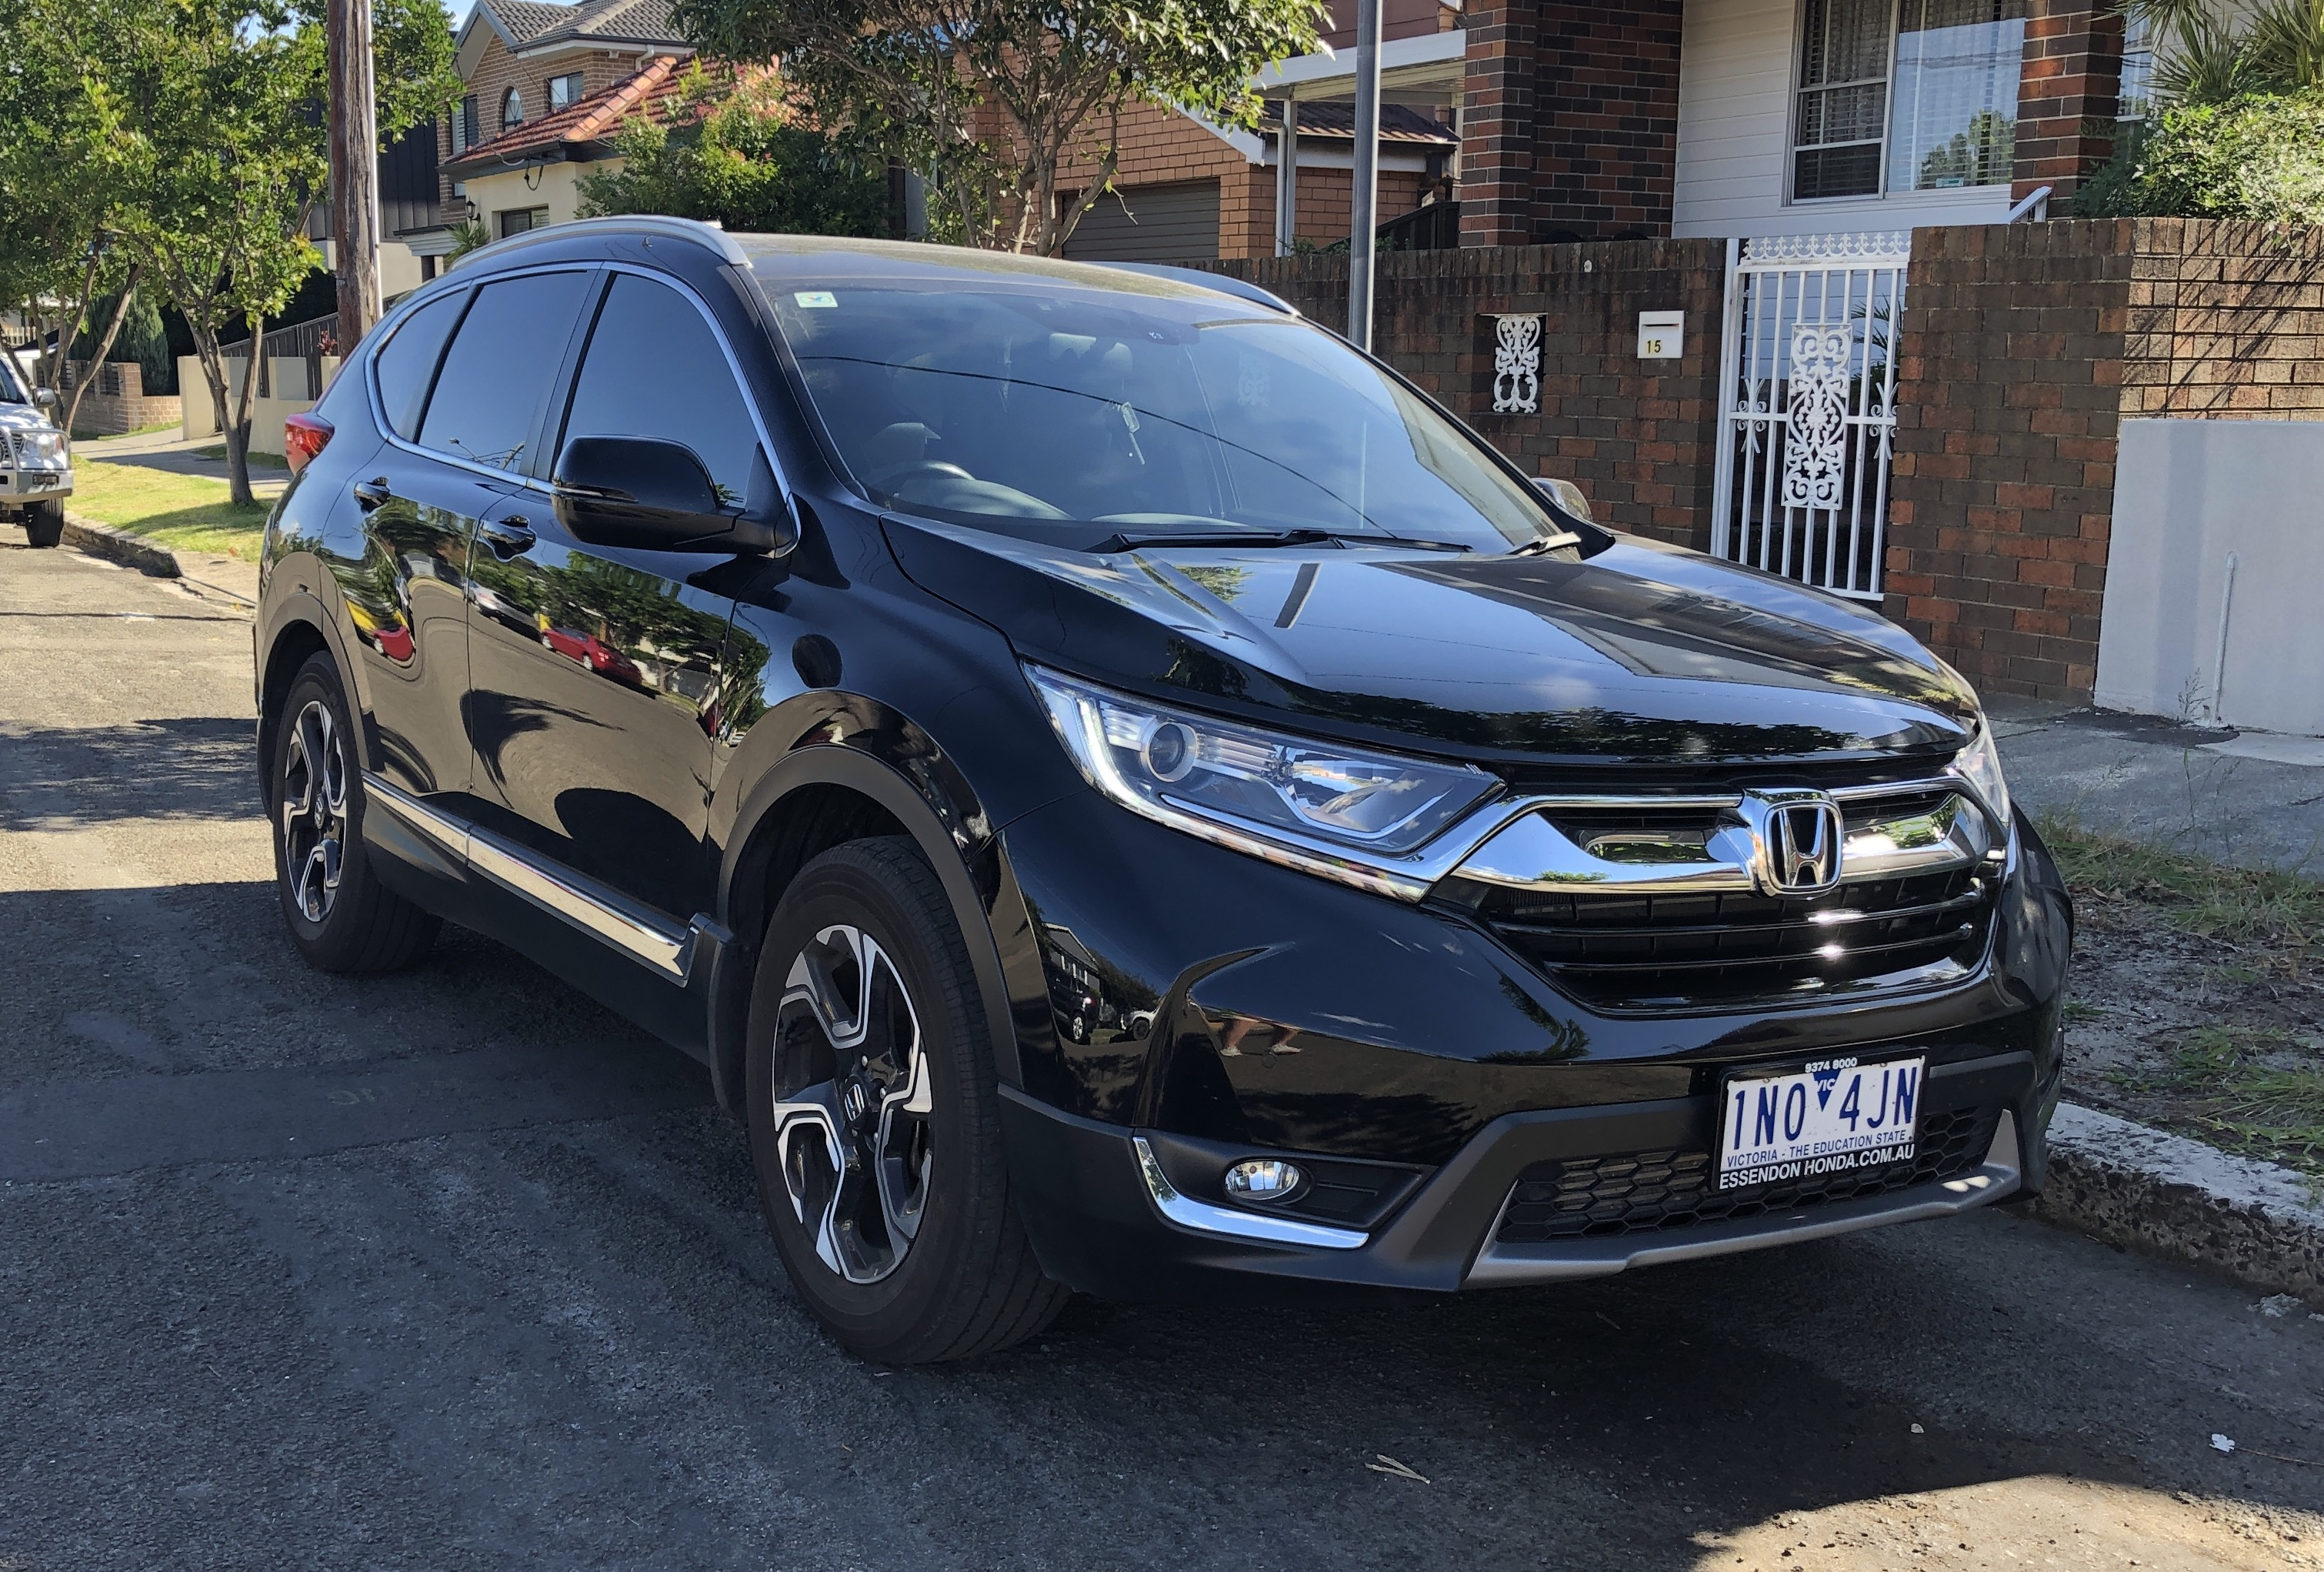 Picture of Soby's 2018 Honda CRV